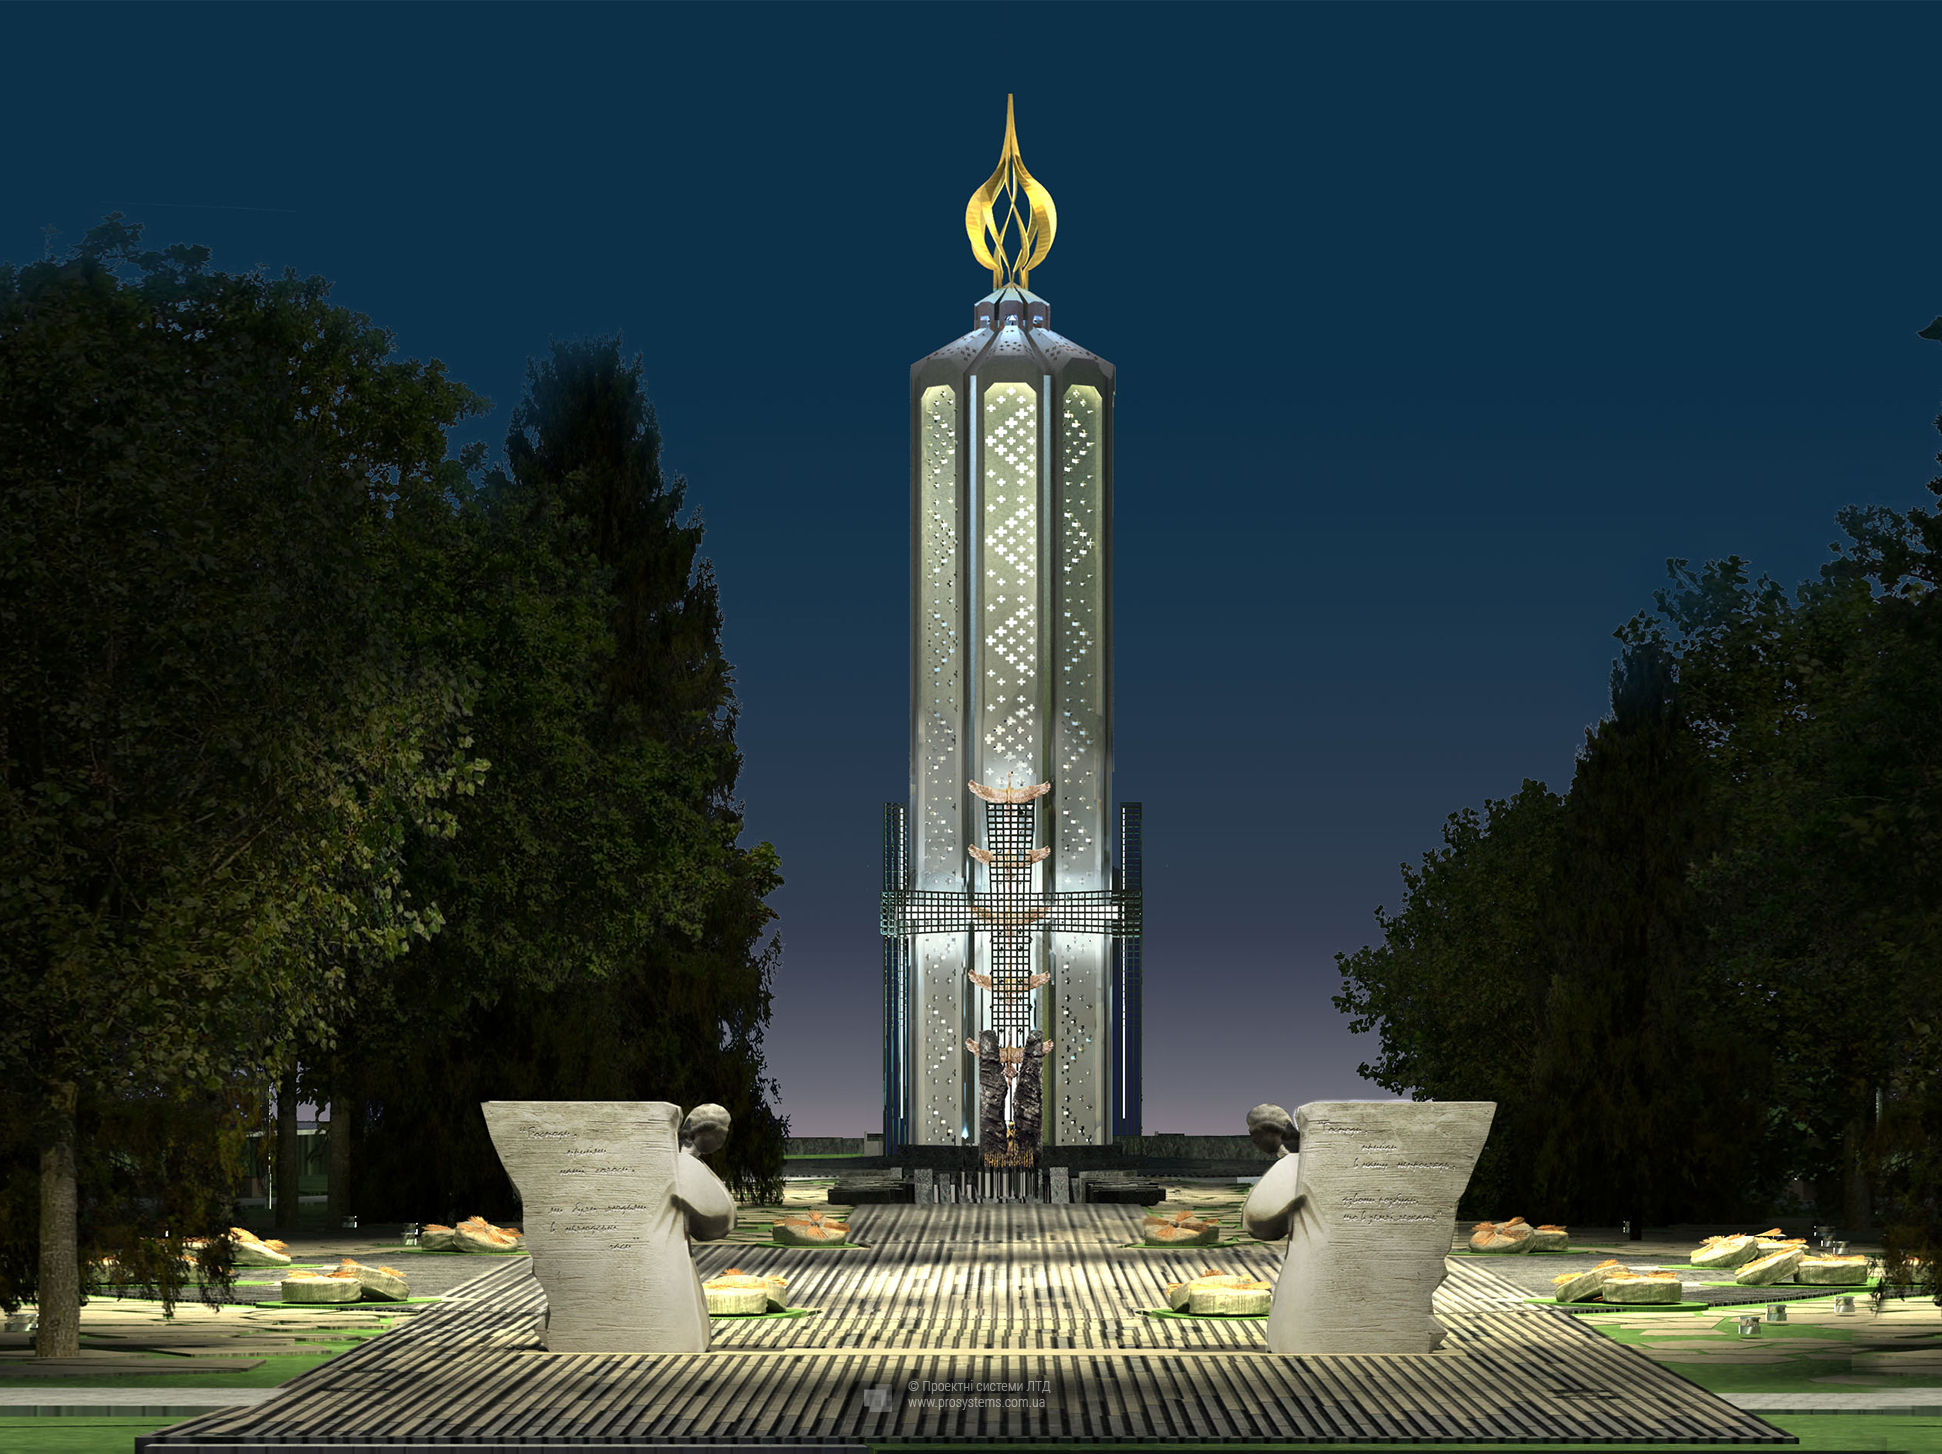 Victims of Holodomor Memorial (First Quarter)